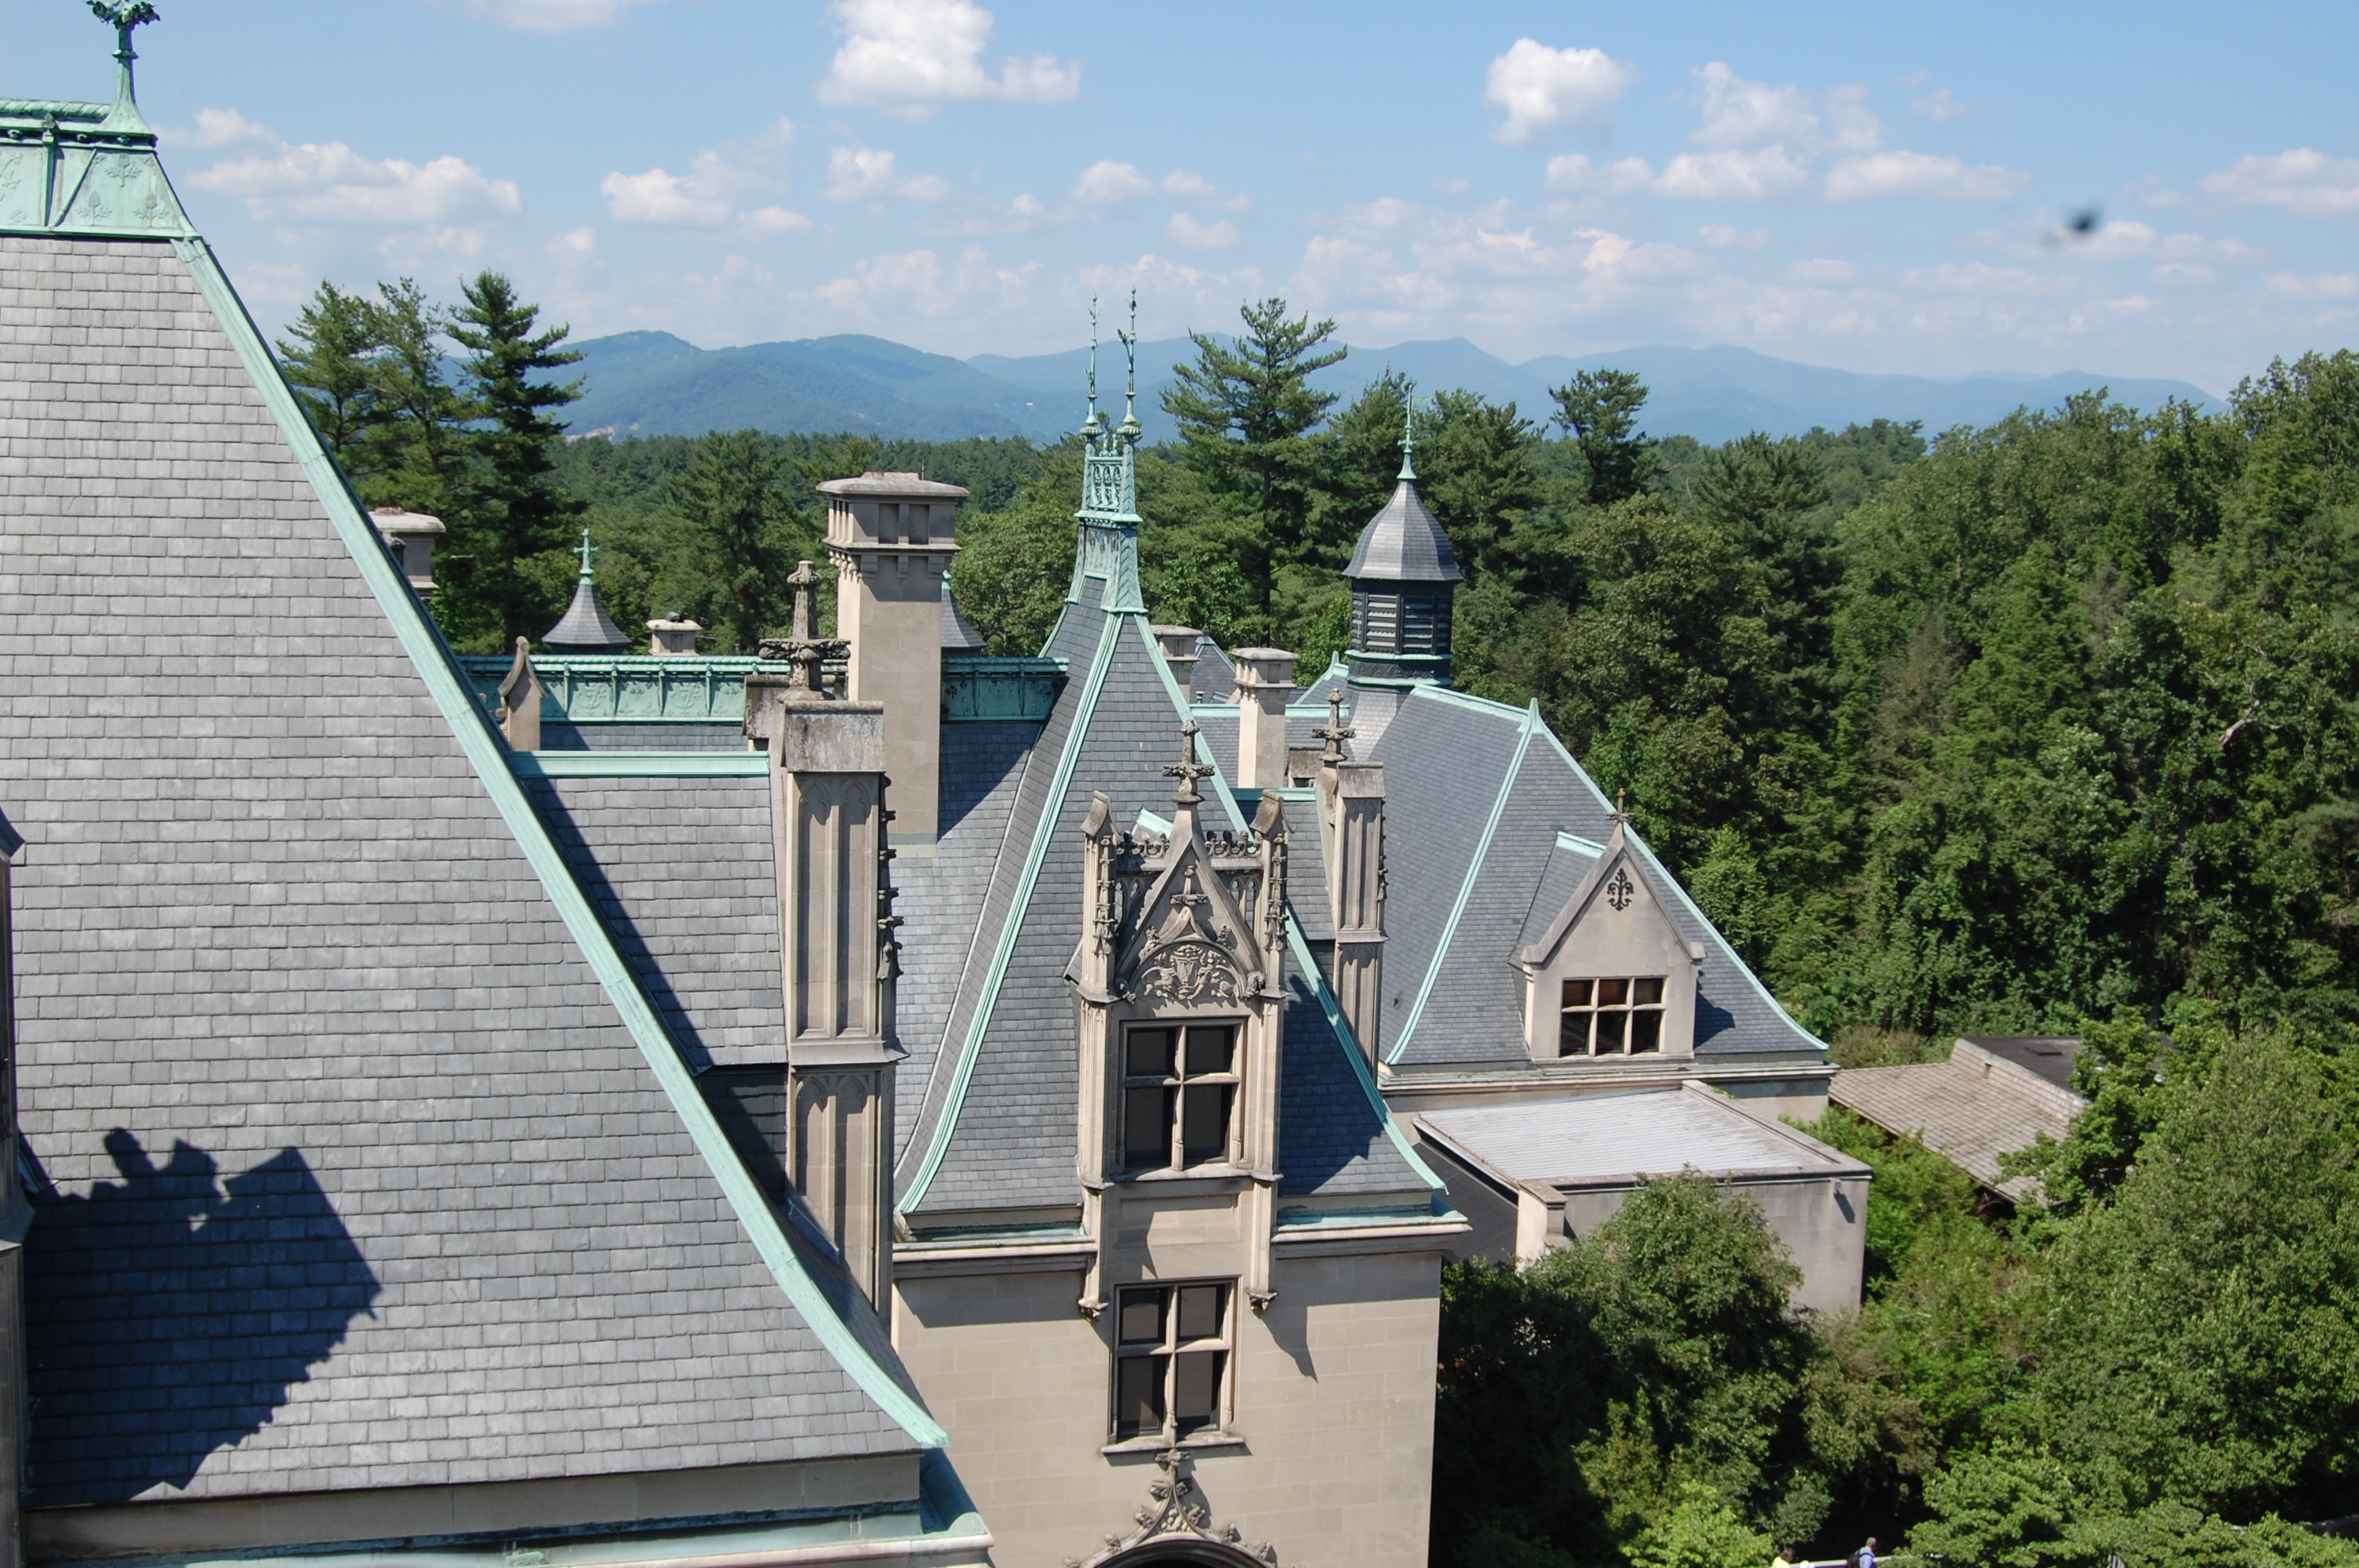 Rooftop view from the Biltmore House